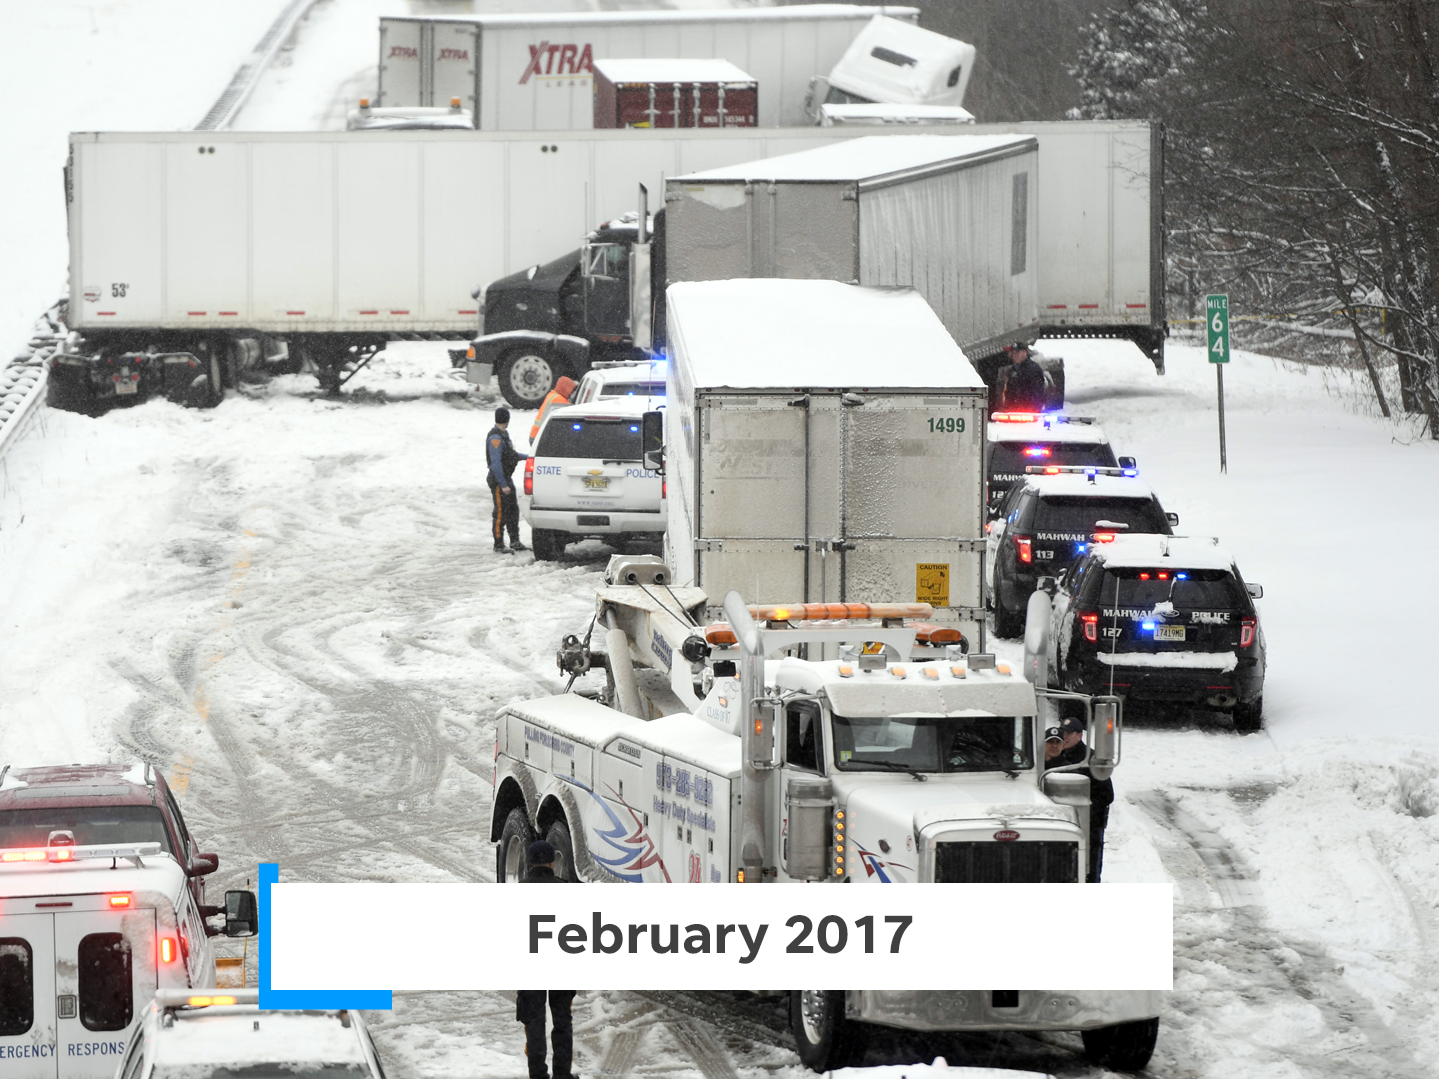 The Blizzard of 2017 followed temperatures as high as 60 degrees, before dumping a foot of snow on the state. Over 100 car crashes were attributed to the storm.